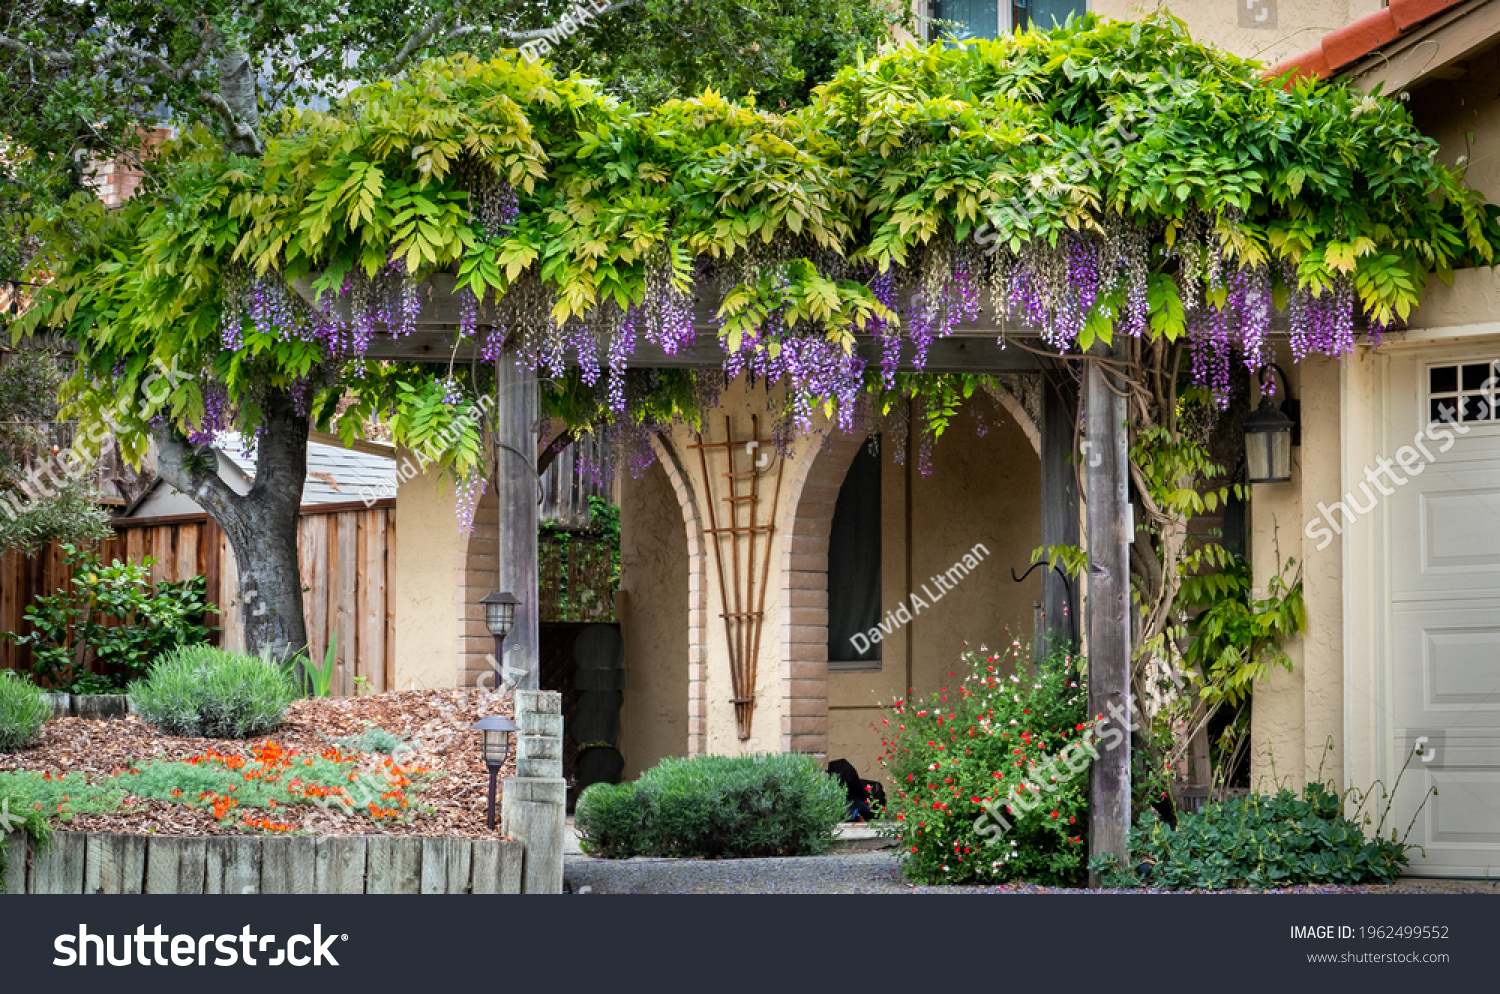 A colorful blooming Wisteria plant with purple flowers grows on a trellis in California.